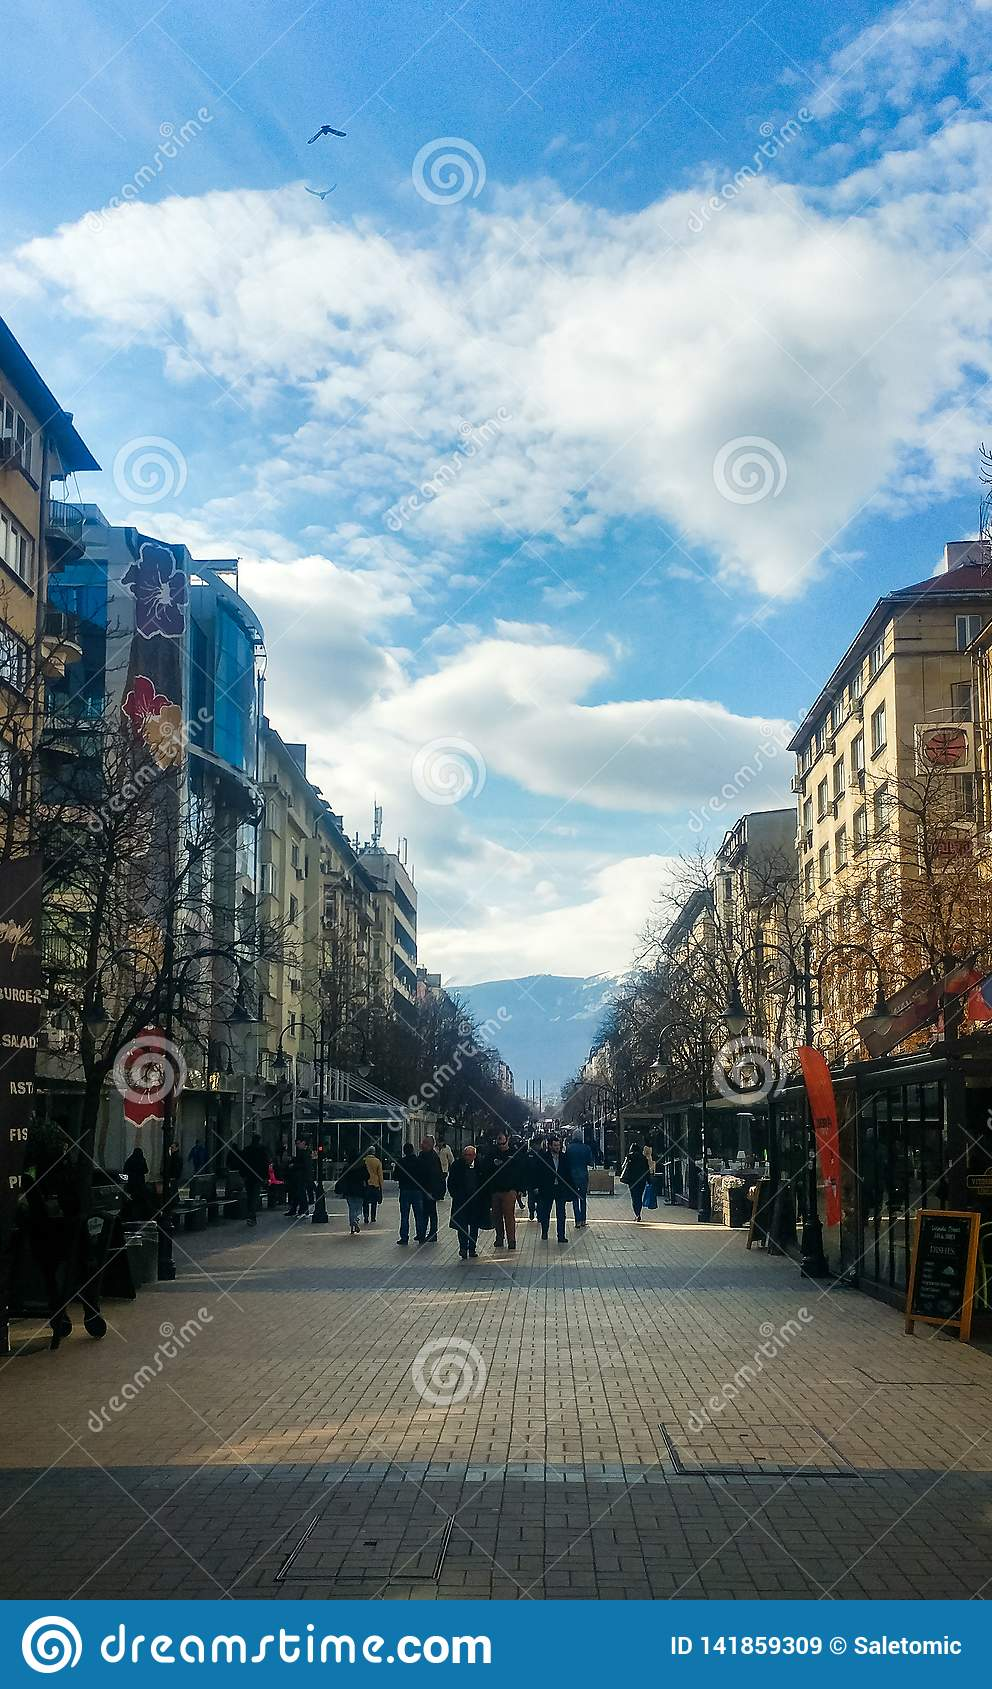 Sofia, Bulgaria - March 11, 2019: Sofia pedestrian walking street on a sunny day